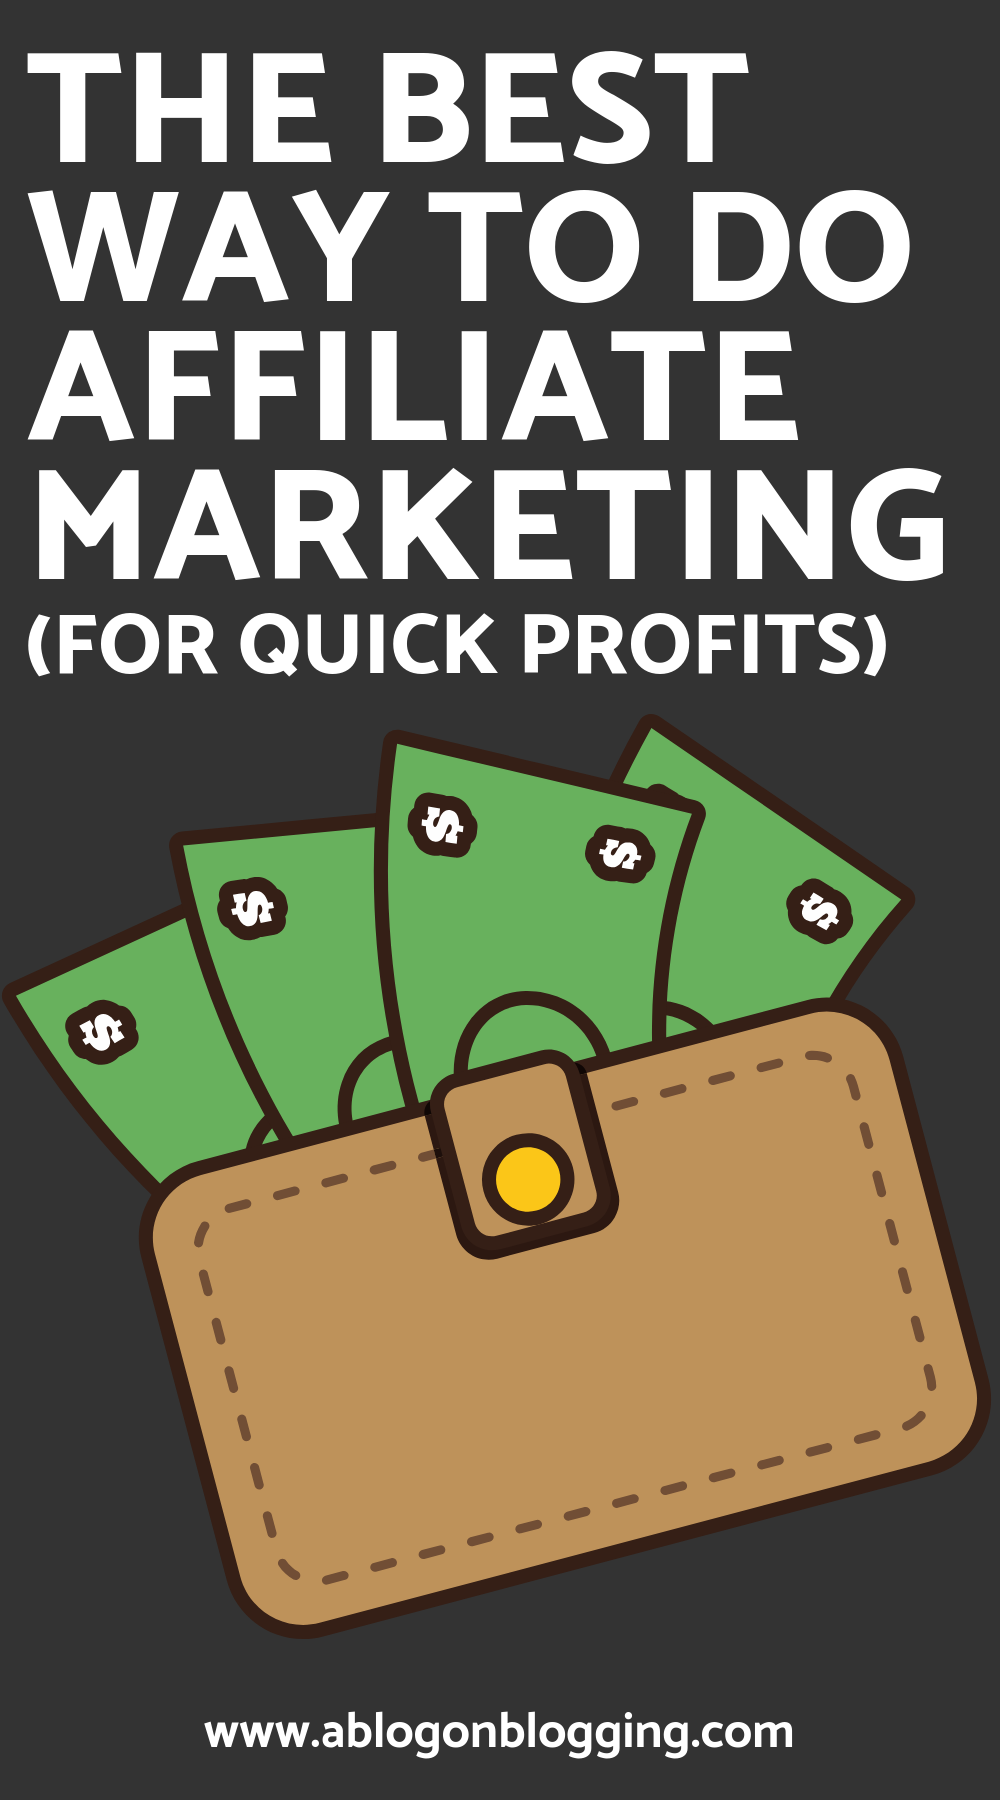 the best way to do affiliate marketing